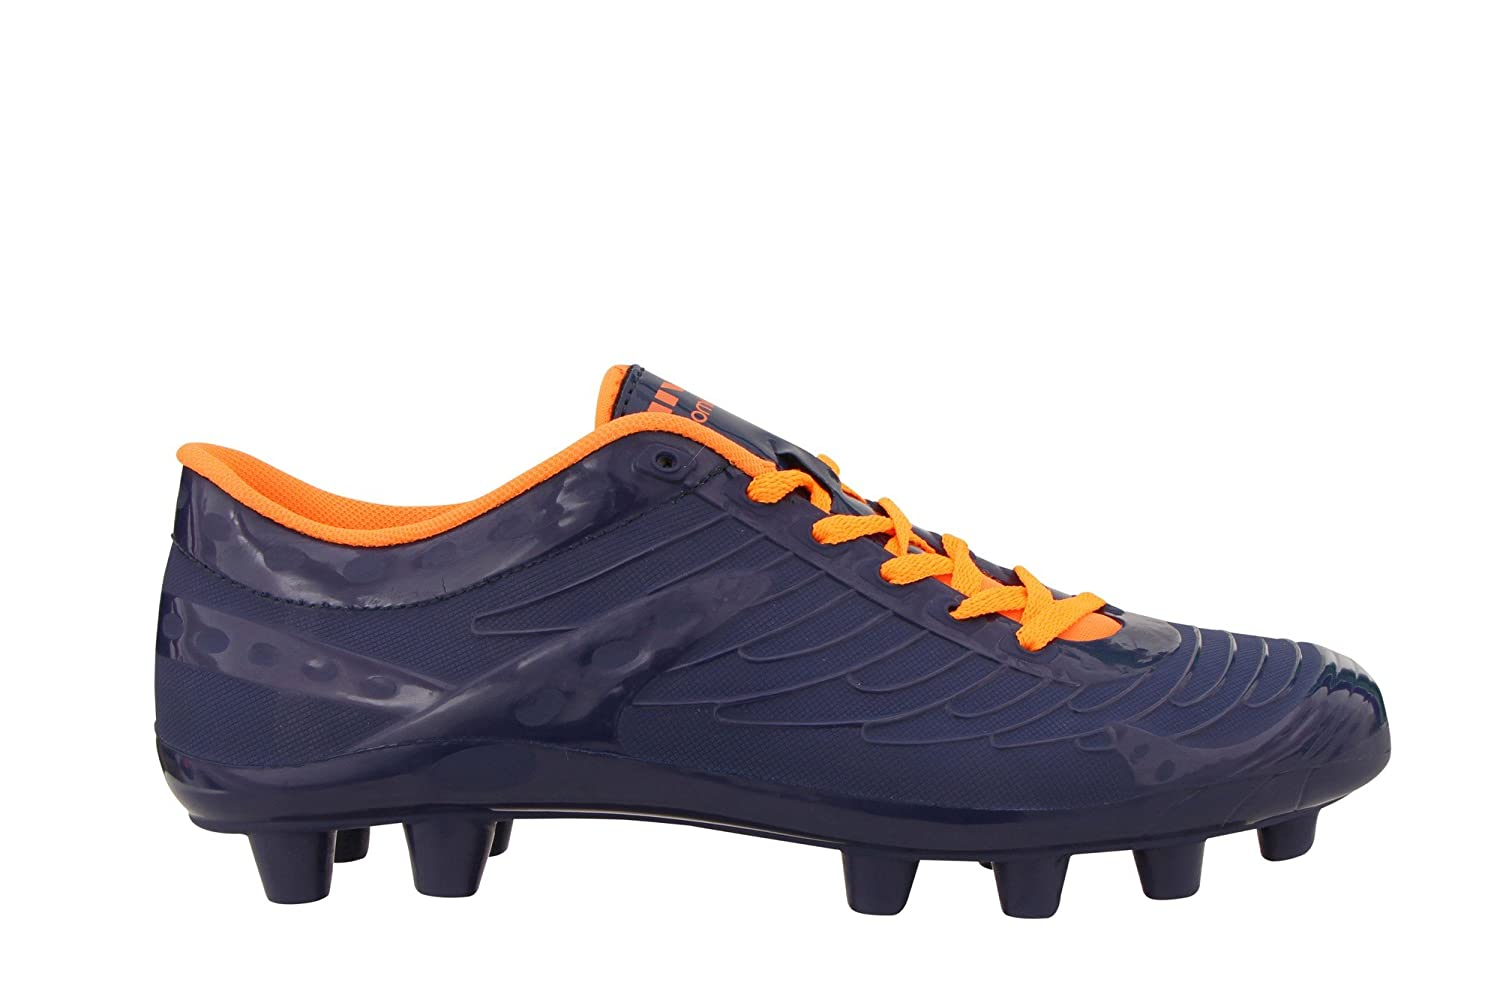 df91601755e Top 5 Best Football Shoes Under 1000 in India. 1. Nivia Dominator Football  Stud